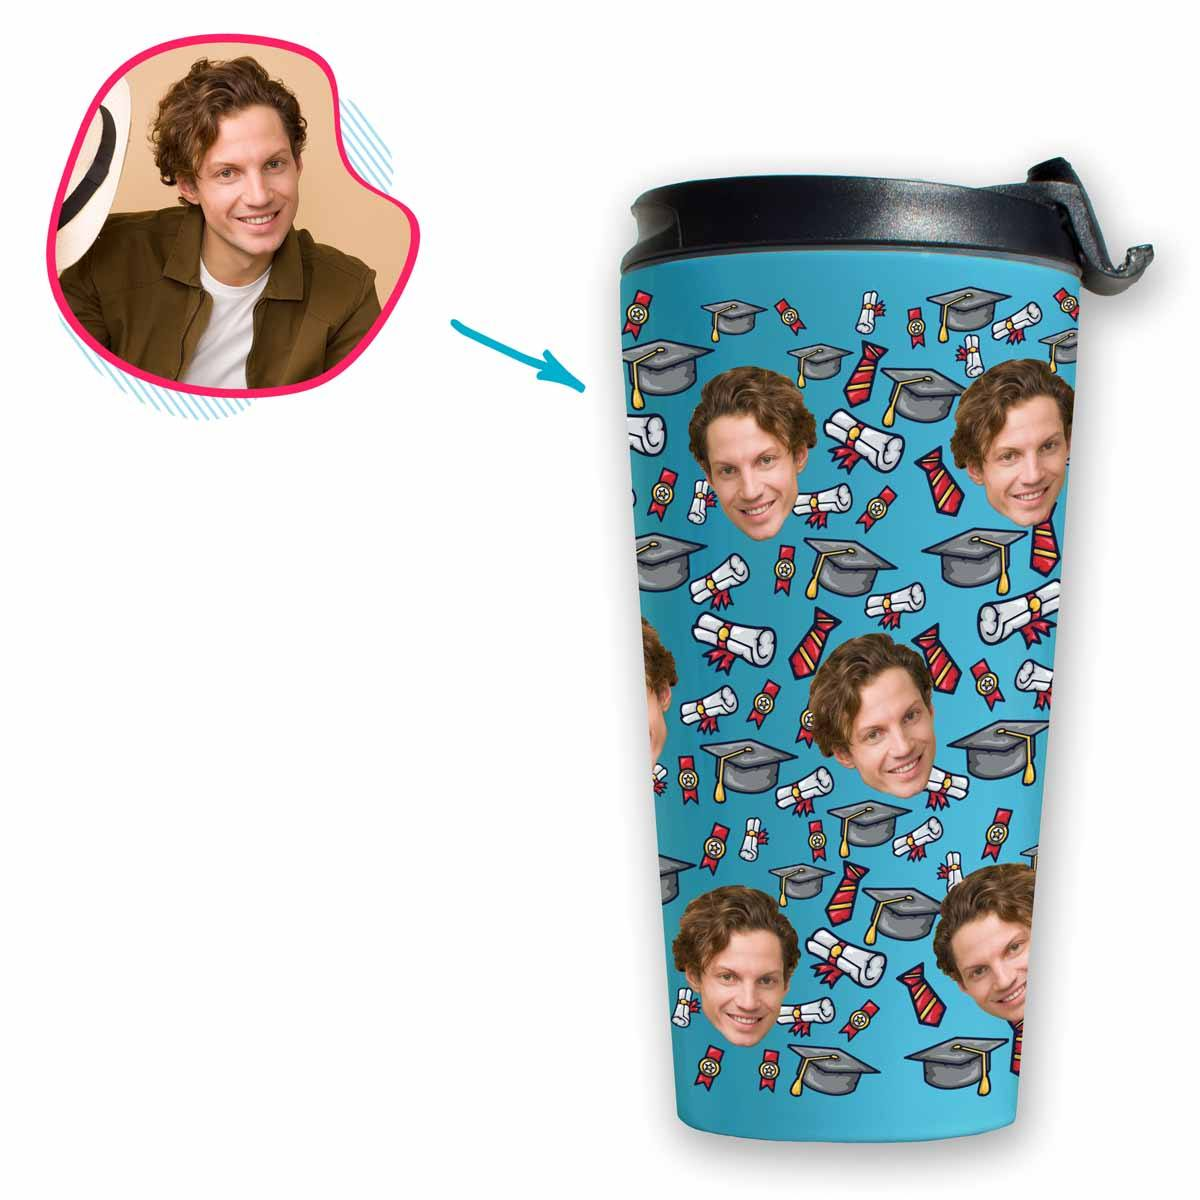 Blue Students & Graduates personalized travel mug with photo of face printed on it